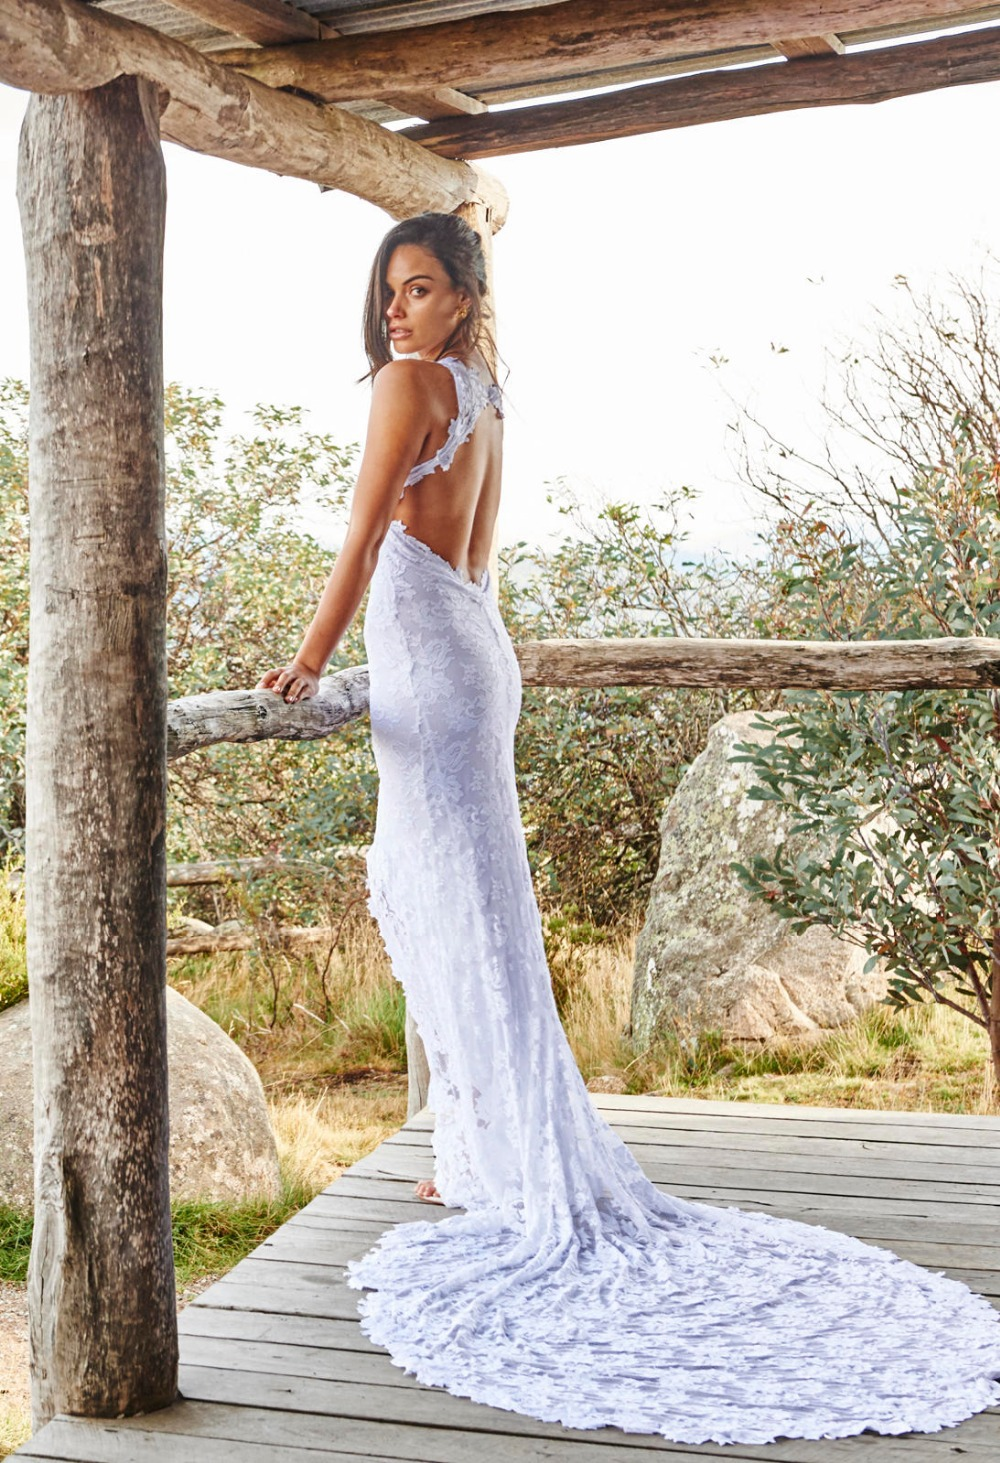 Fishtail Wedding Dress With Train : Wedding dresses with lace back cut out galleryhip the hippest